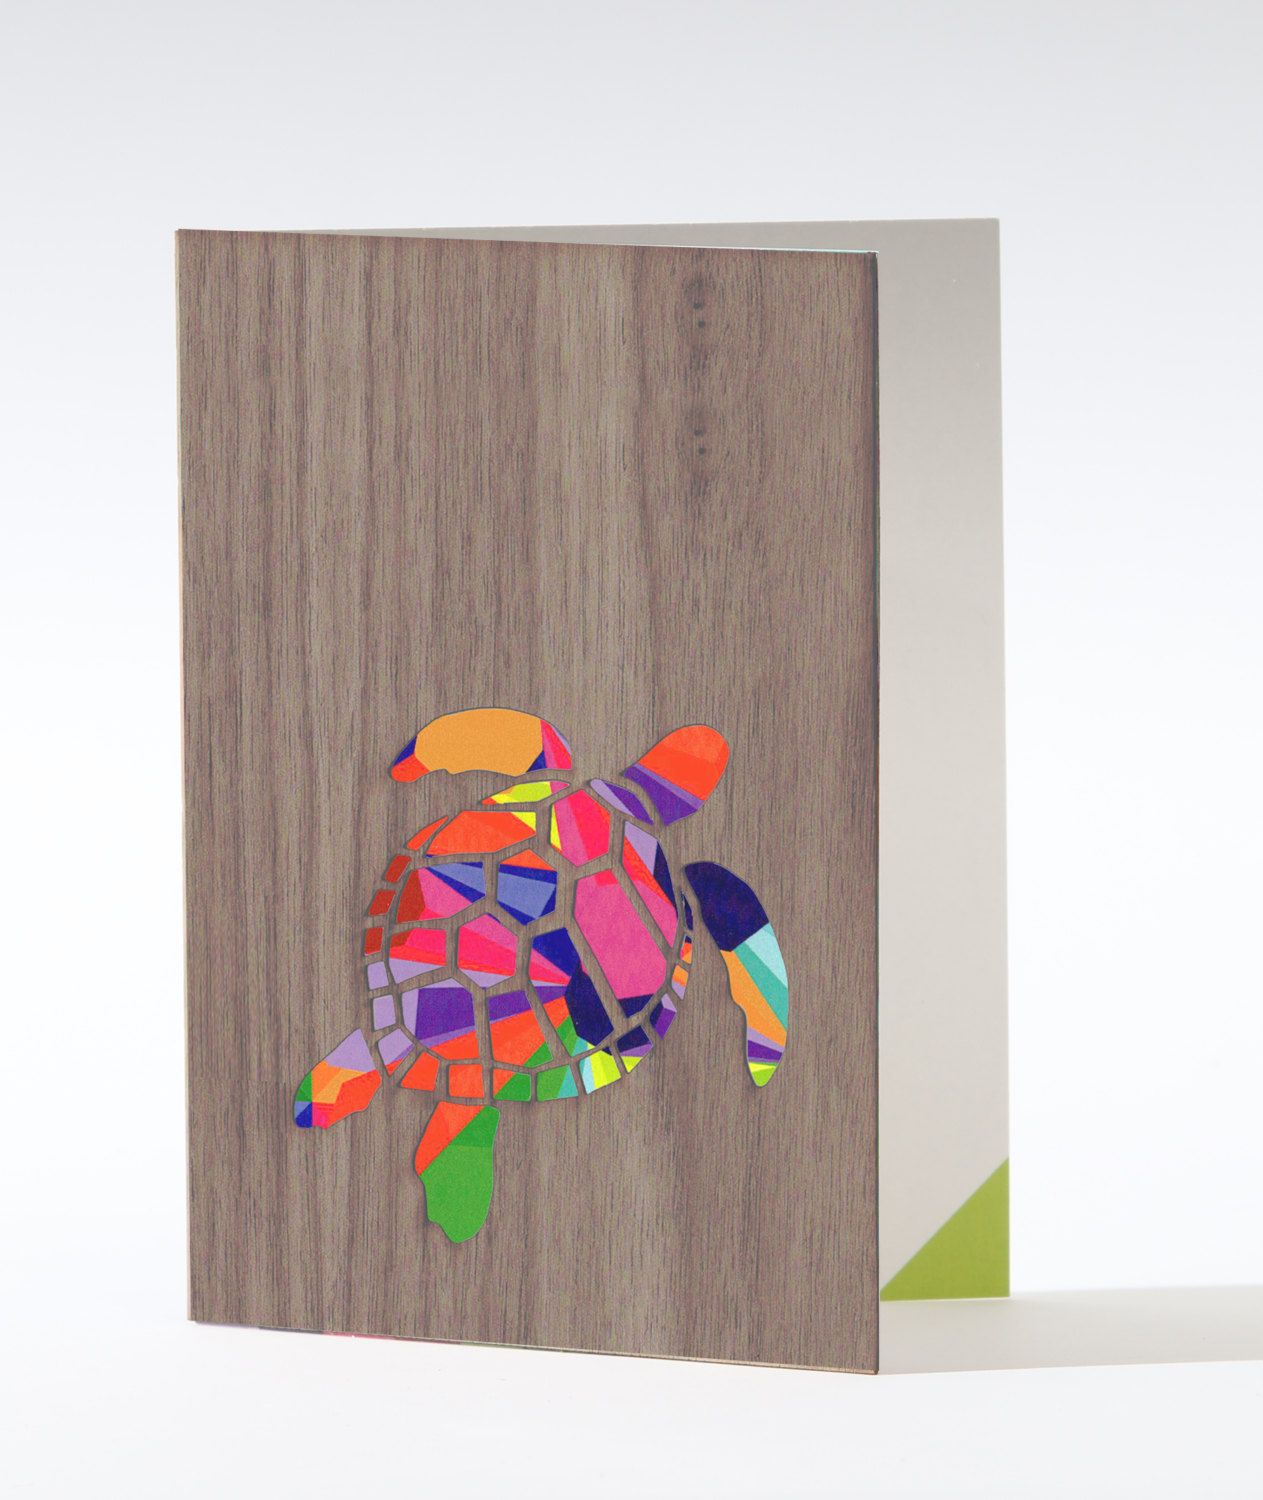 Blank Greeting Card Any Occasion Card Turtle Art Card Design